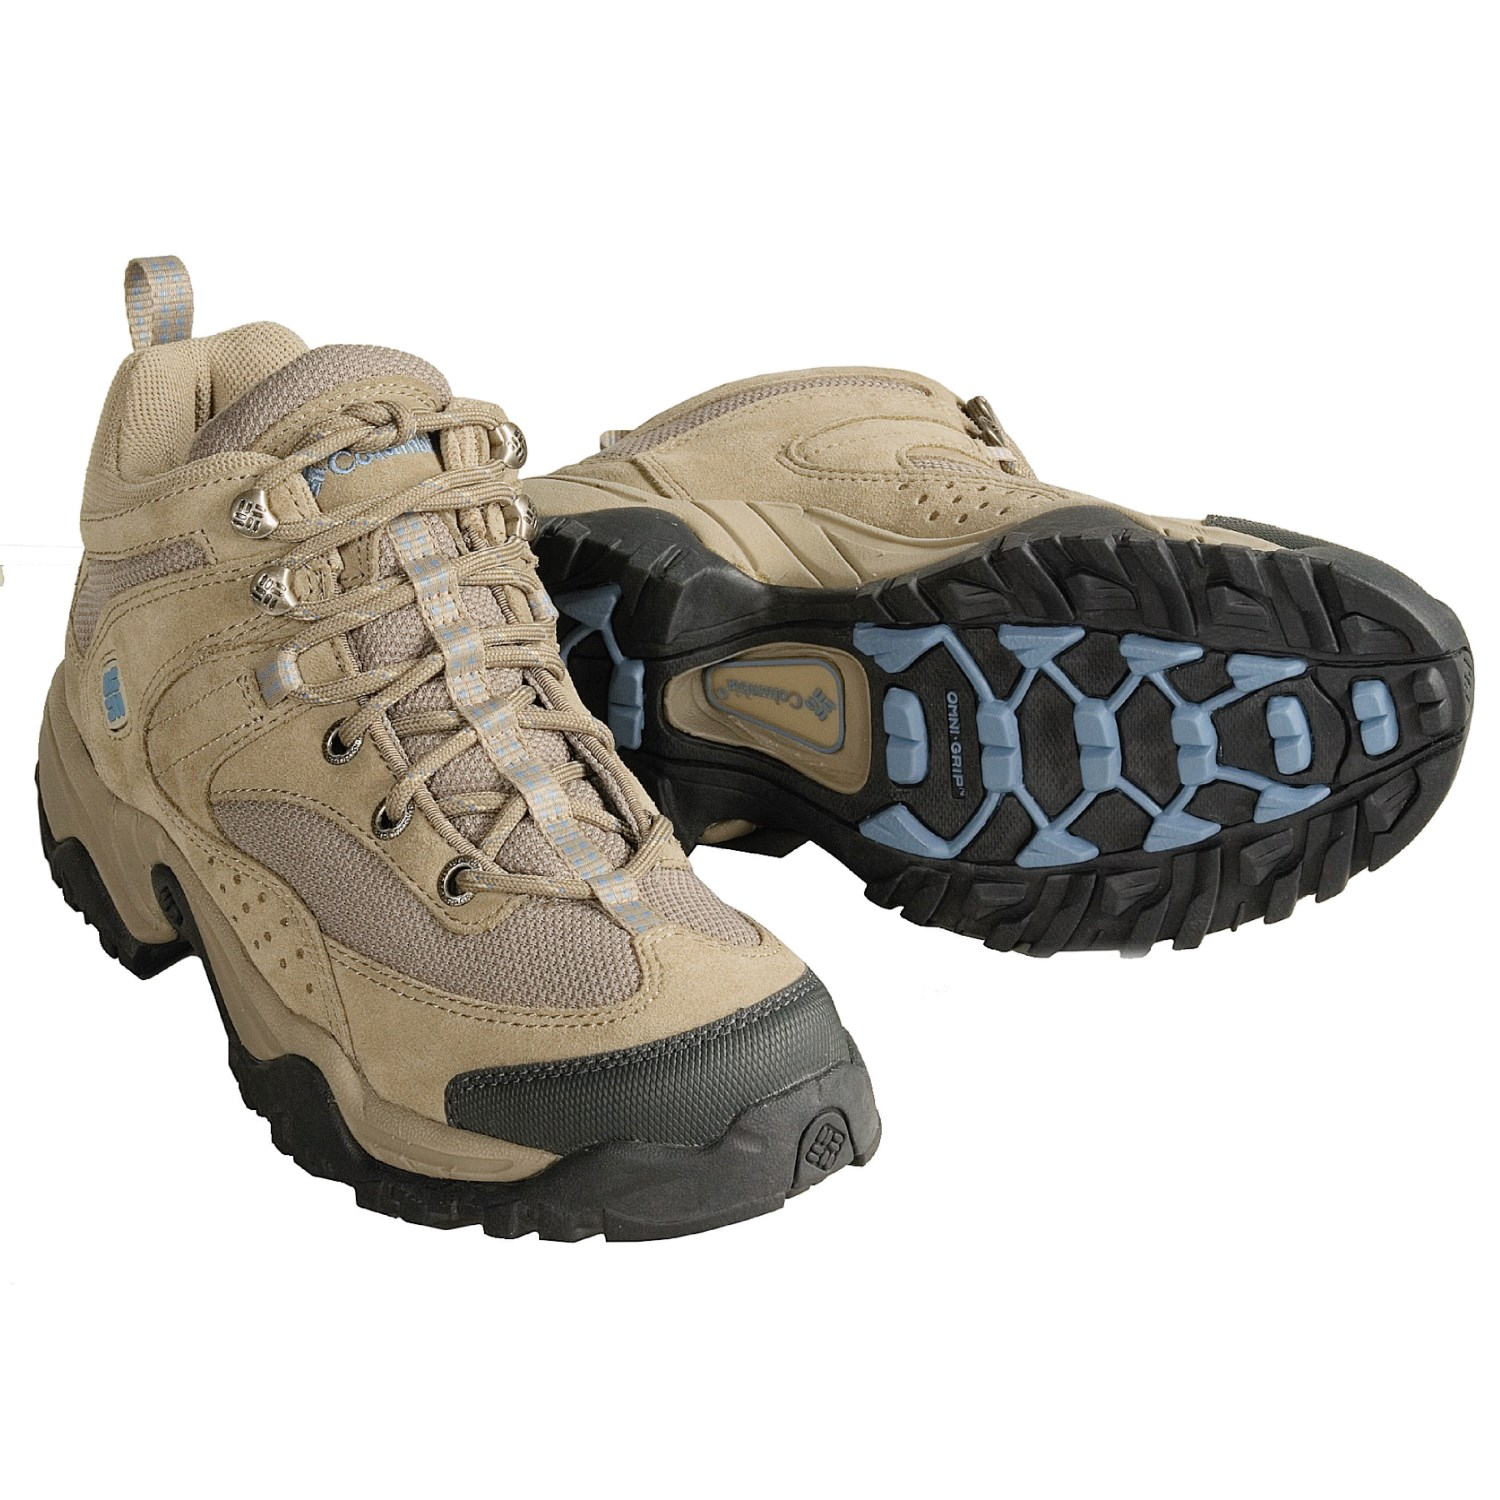 Columbia Women's Shastalavista Mid Omni Light Grey/Voltage Hiking